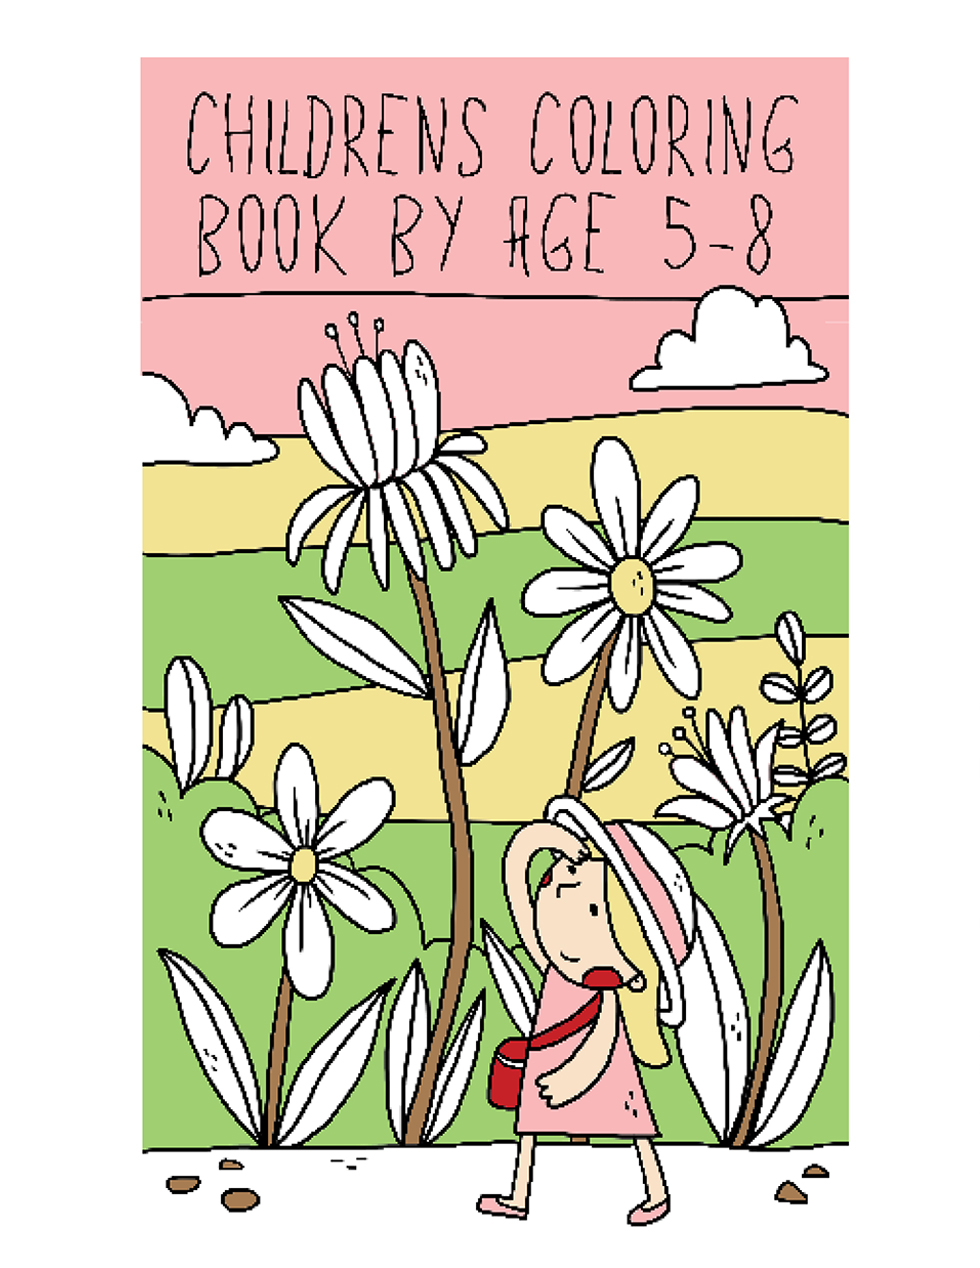 Happies - Childrens Coloring Books by Age 5-8